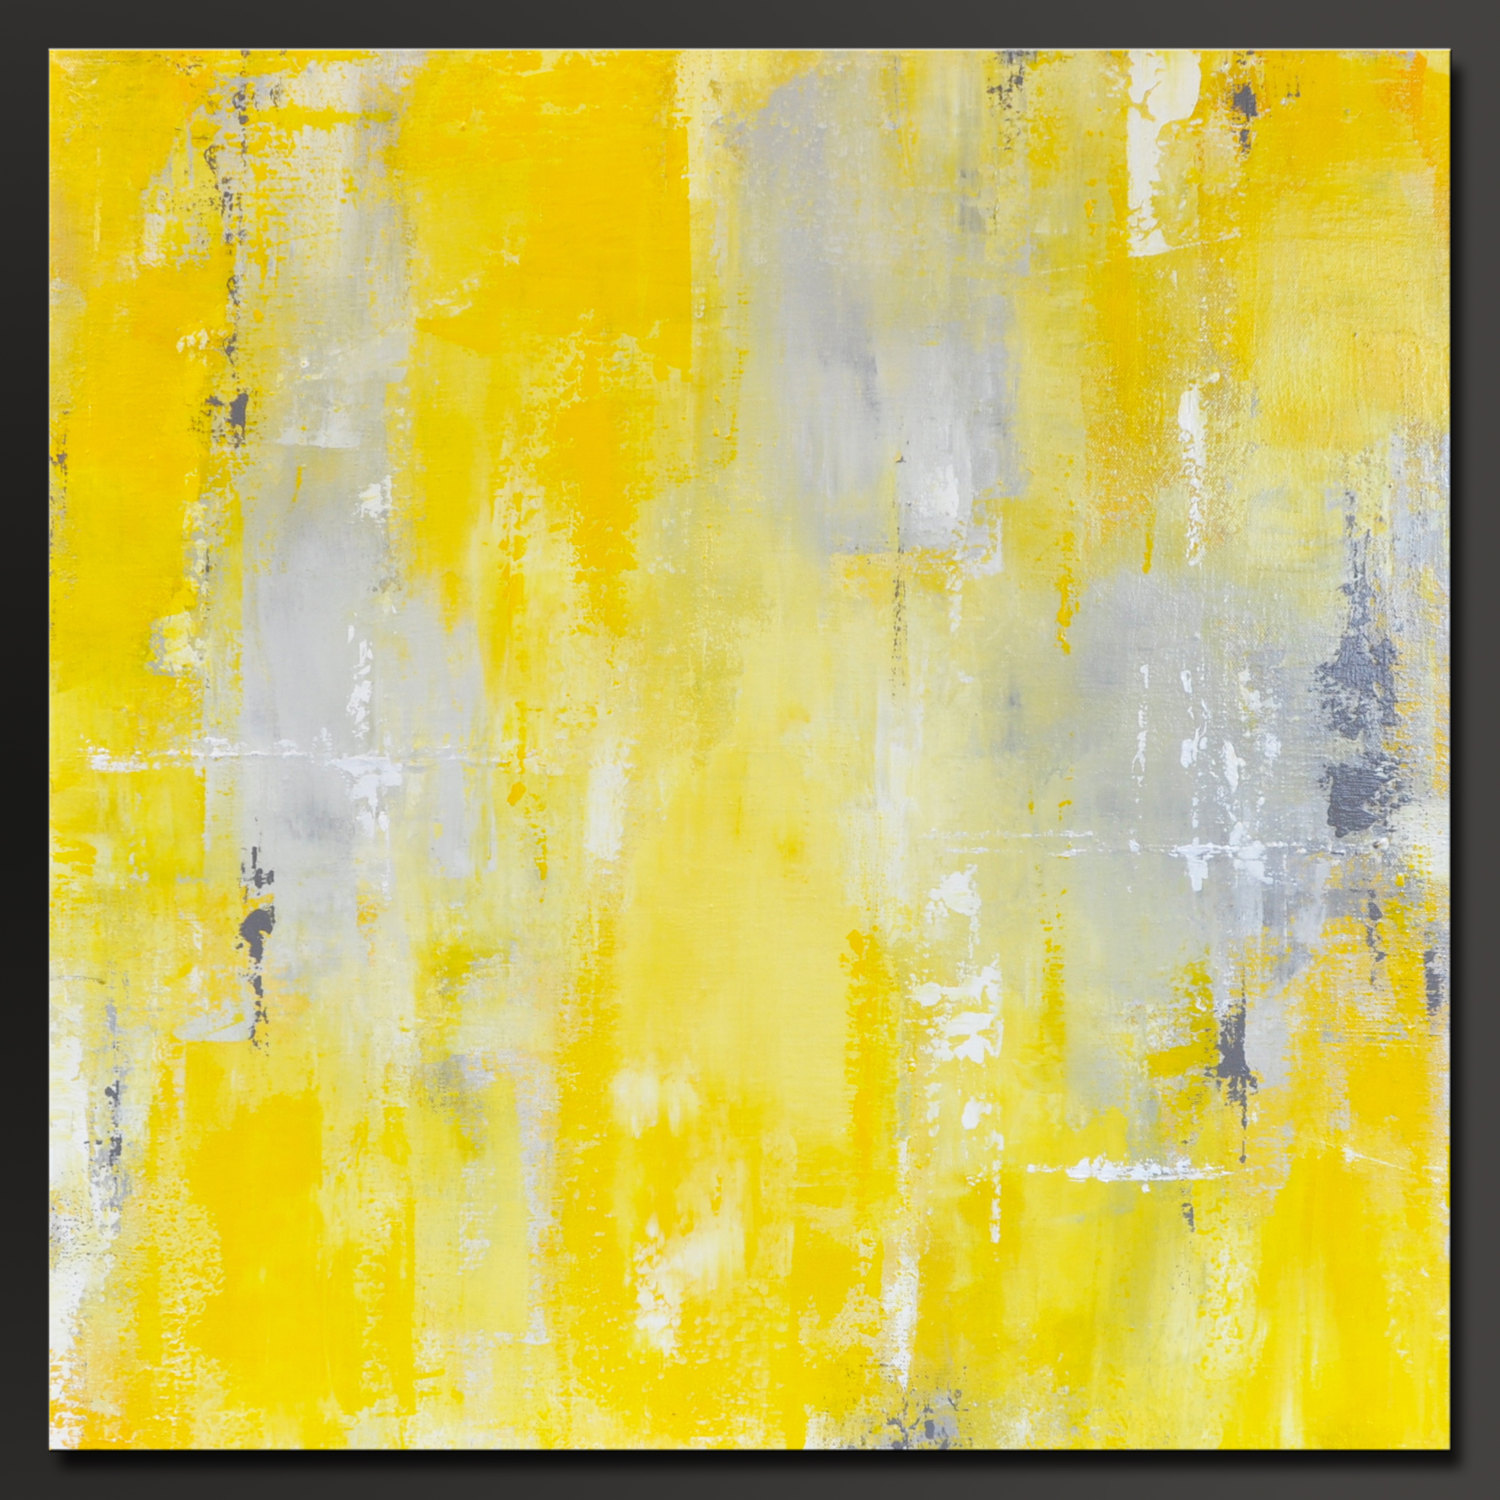 Sunshine - 24 x 24 - Abstract Acrylic Painting - Contemporary Wall ...